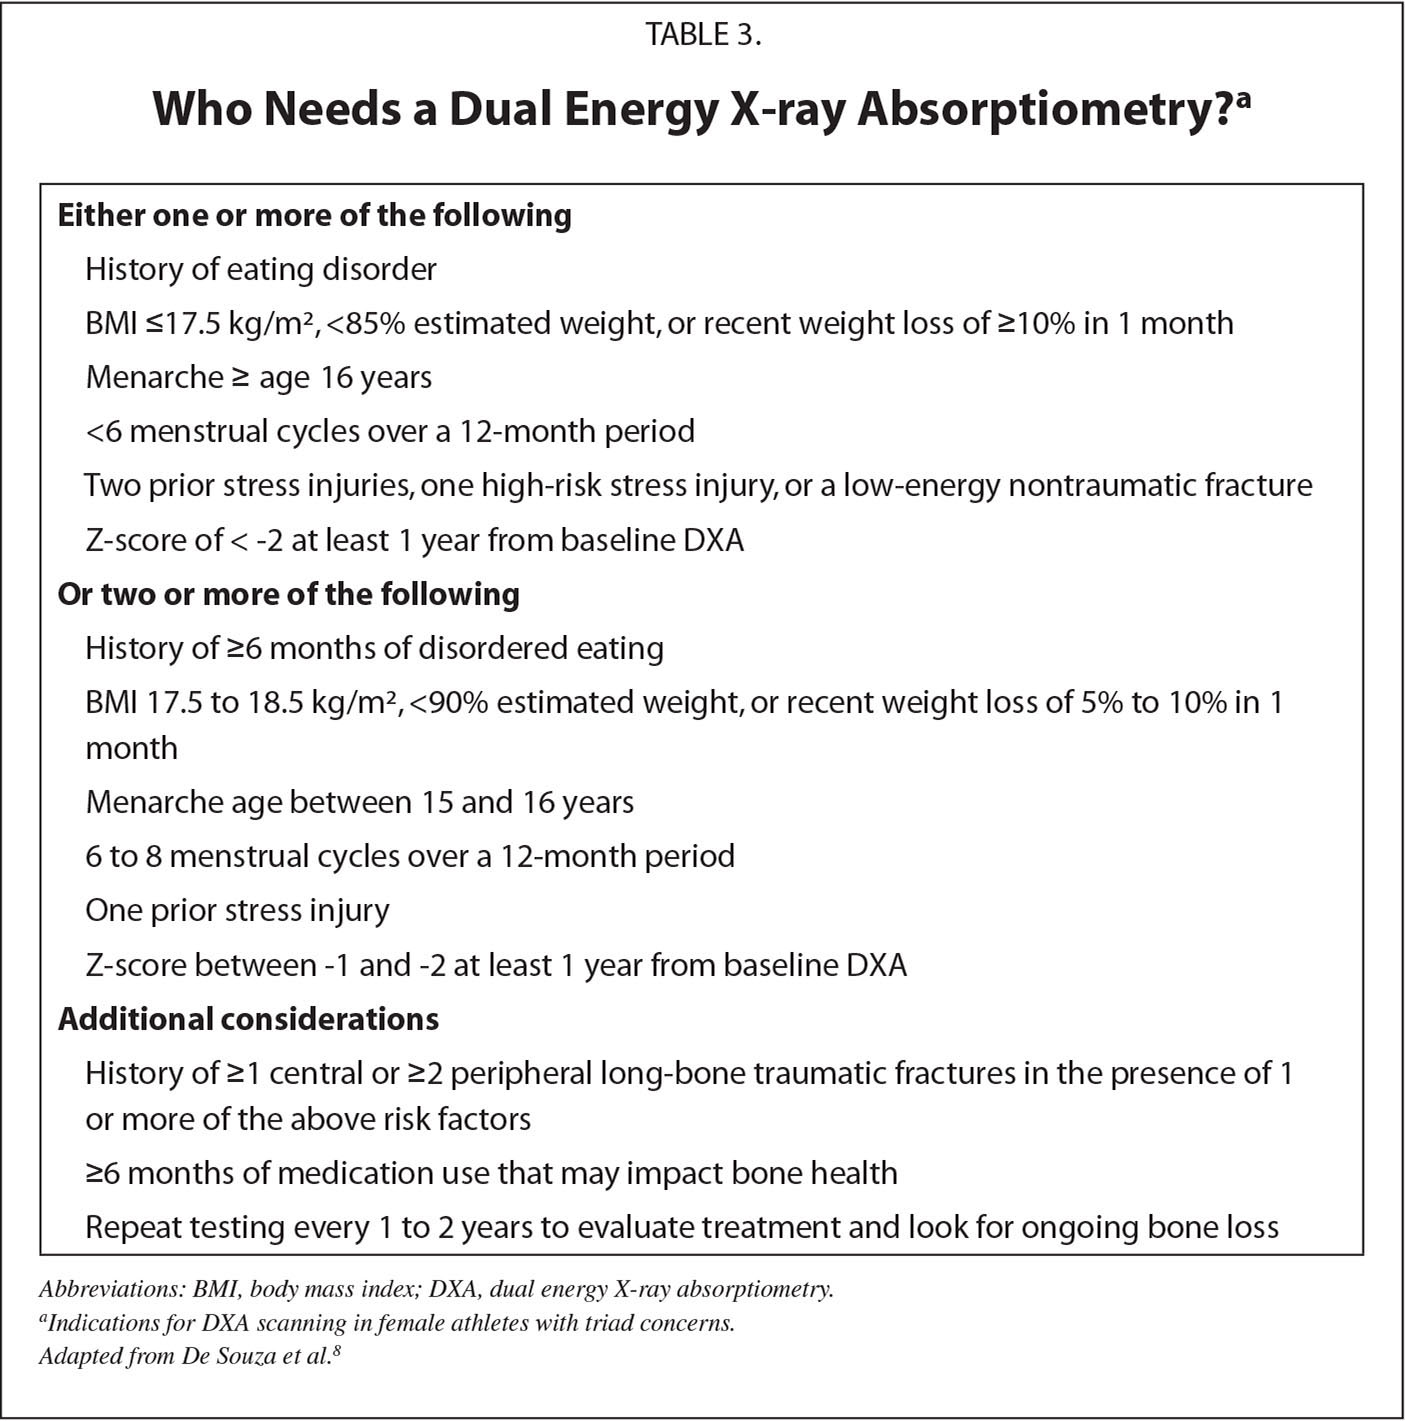 Who Needs a Dual Energy X-ray Absorptiometry?a